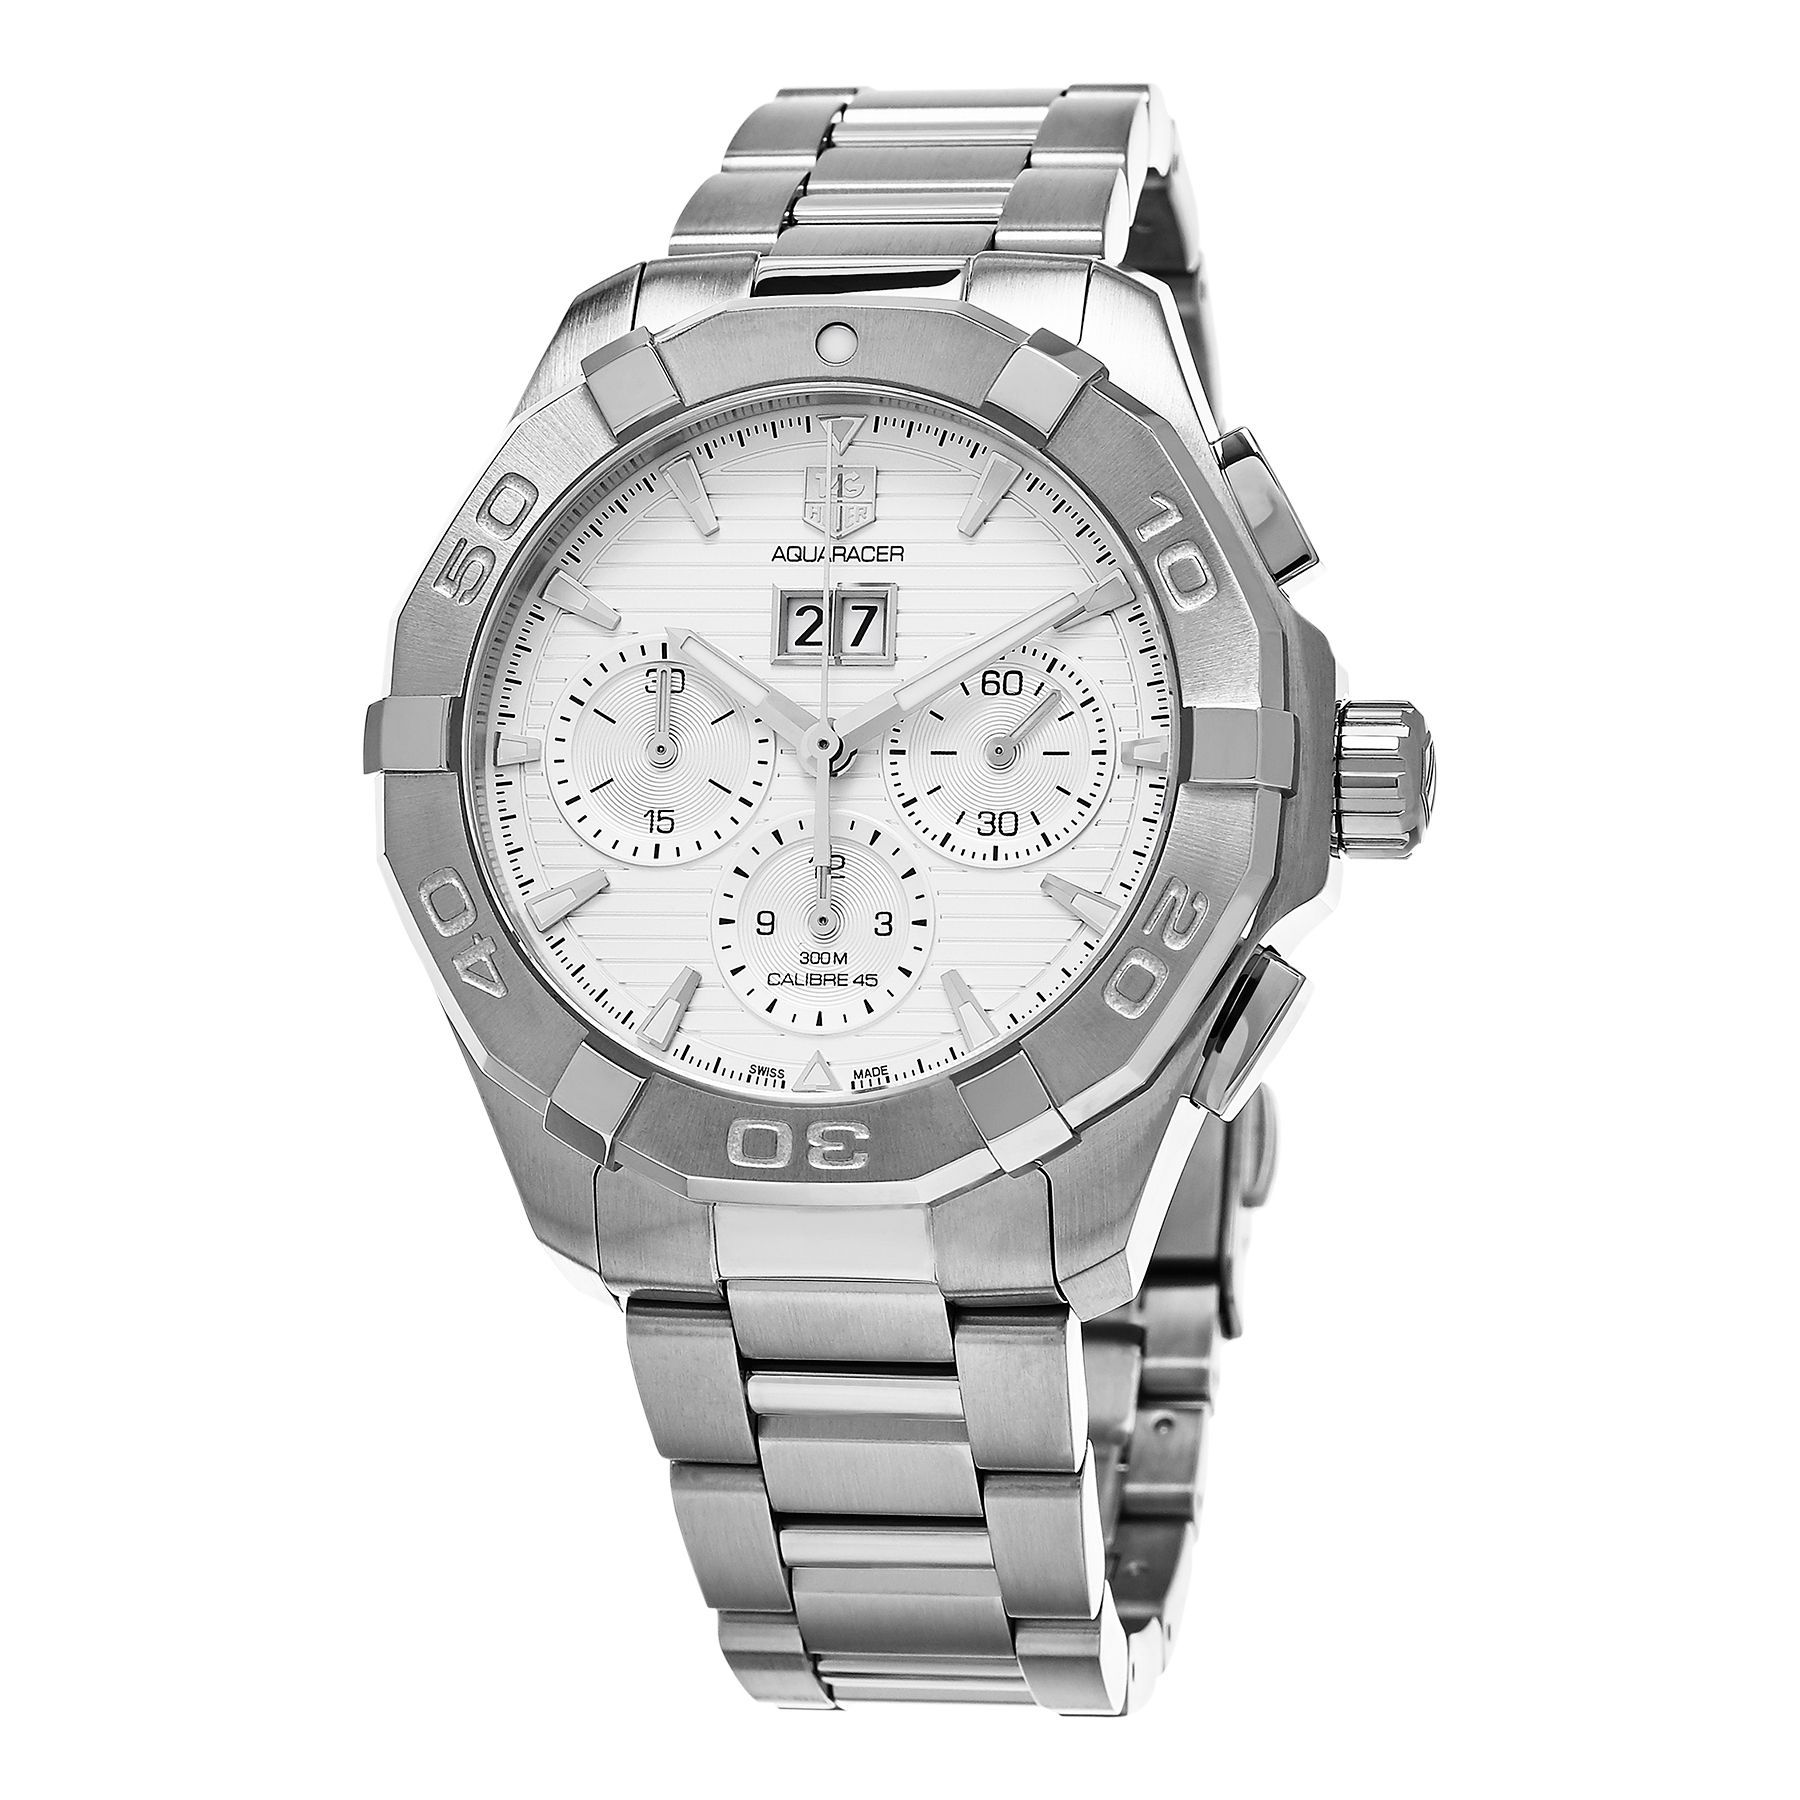 Tag Heuer Men's CAY211Y.BA0926 '300 Aquaracer' Dial Chronograph Swiss Automatic Watch